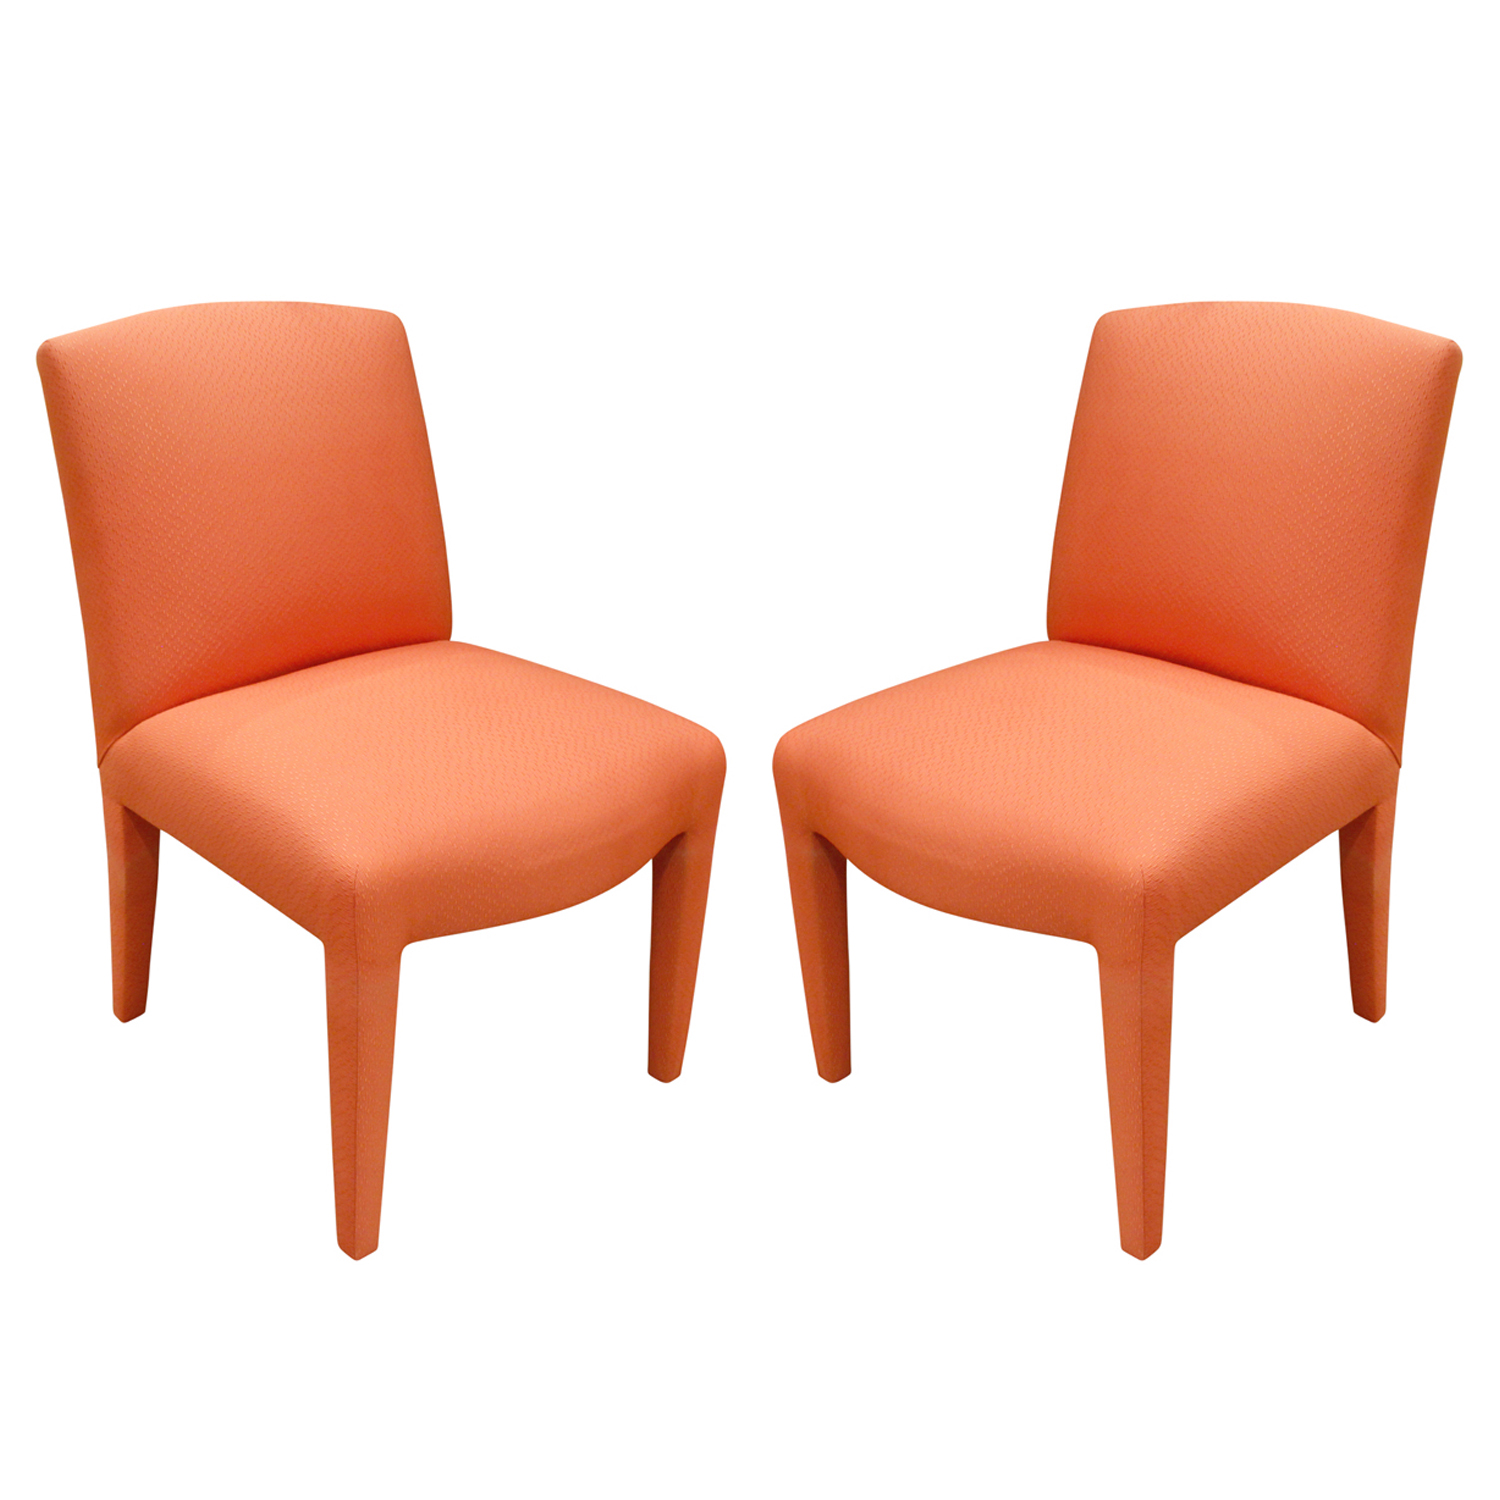 Donghia 120 set of 10 salmon pink diningchairs185 angl x 2.jpg